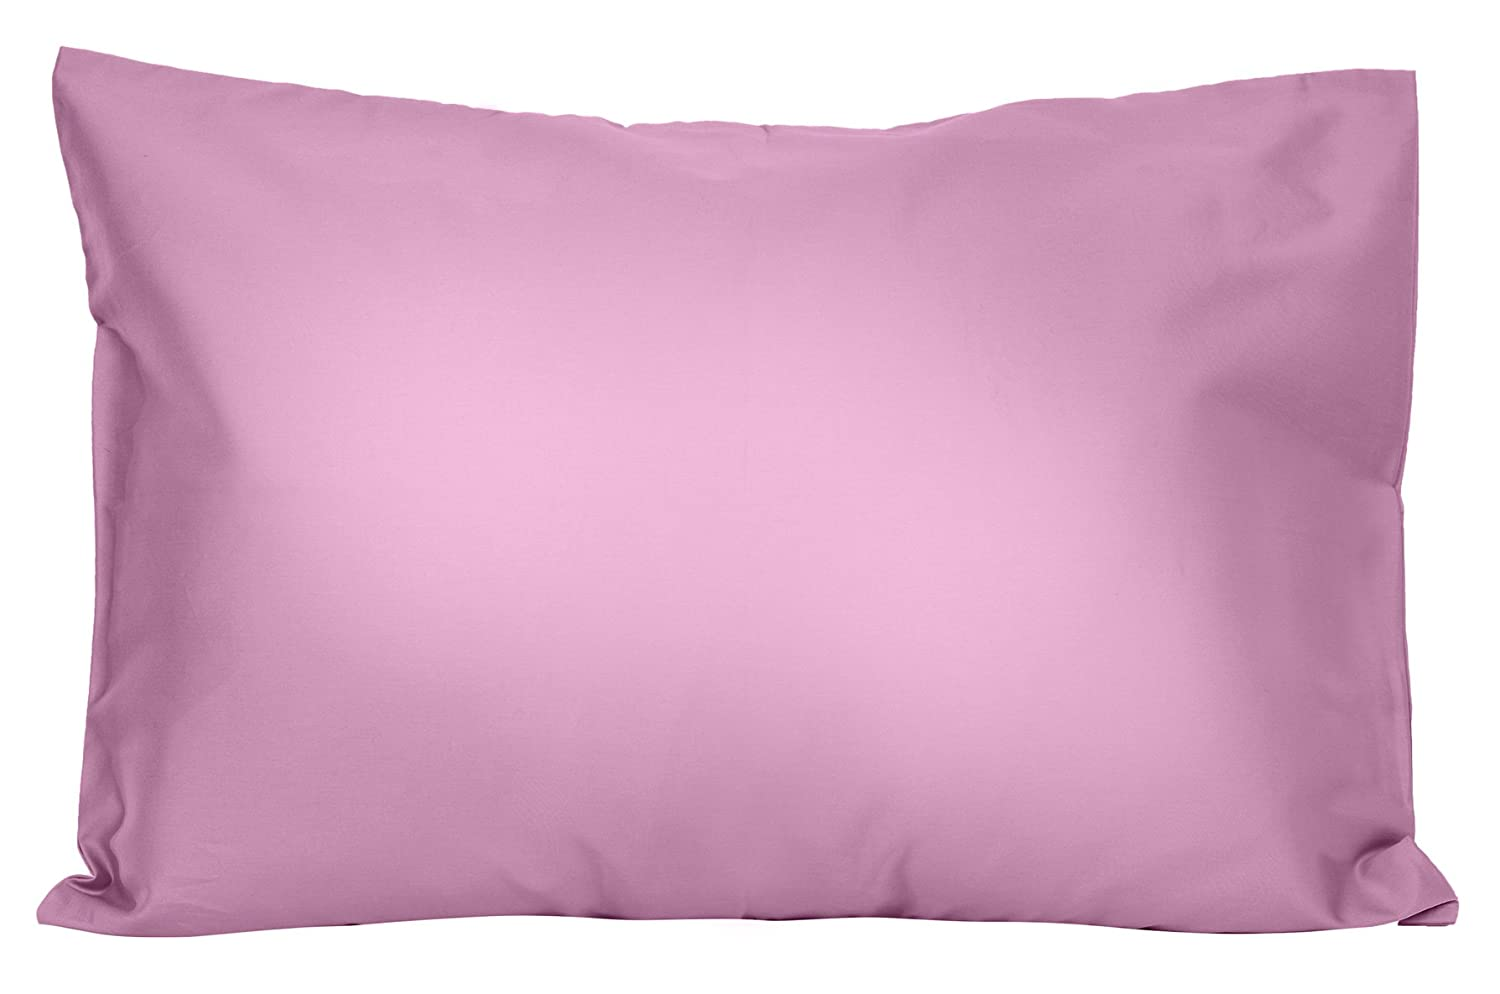 2 Pack for Pillows Sized 13x18 and 14x19-100/% Cotton with Soft Sateen Weave ZadisonJaxx Bellacolour Collection Machine Washable 2 Purple Lavender Toddler Pillowcases Envelope Style